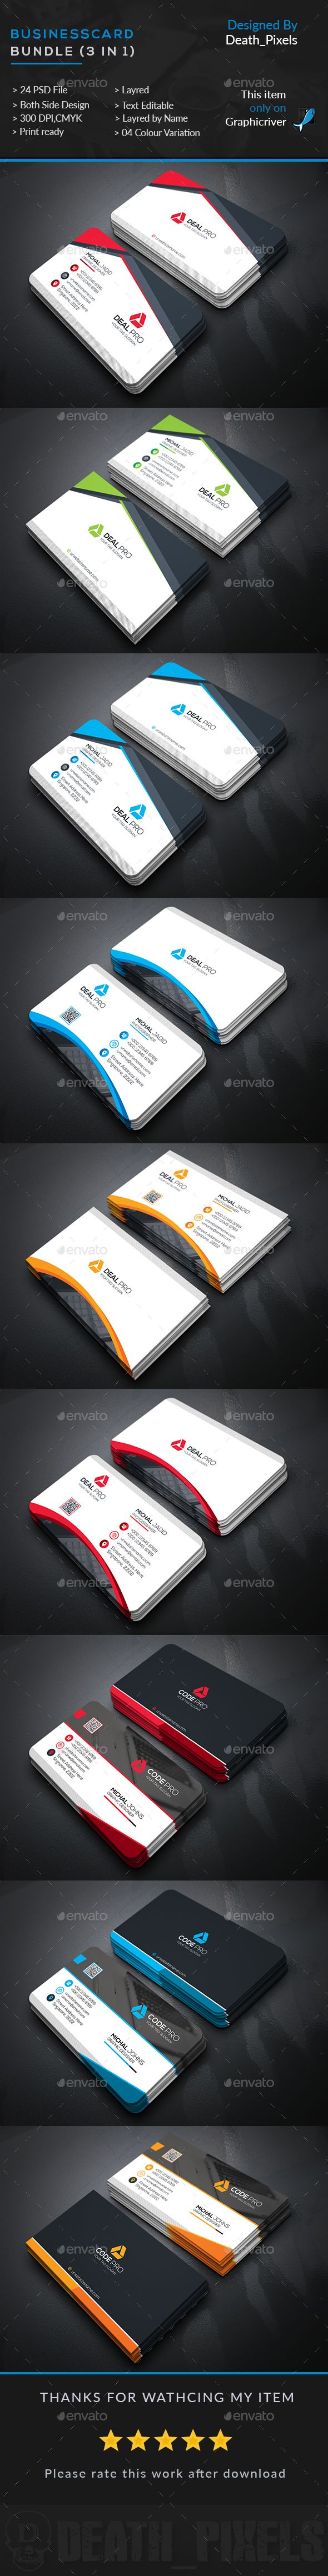 3 Business Card Templates PSD. Download here: http://graphicriver.net/item/business-card-bundle-3-in-1/16534274?ref=ksioks